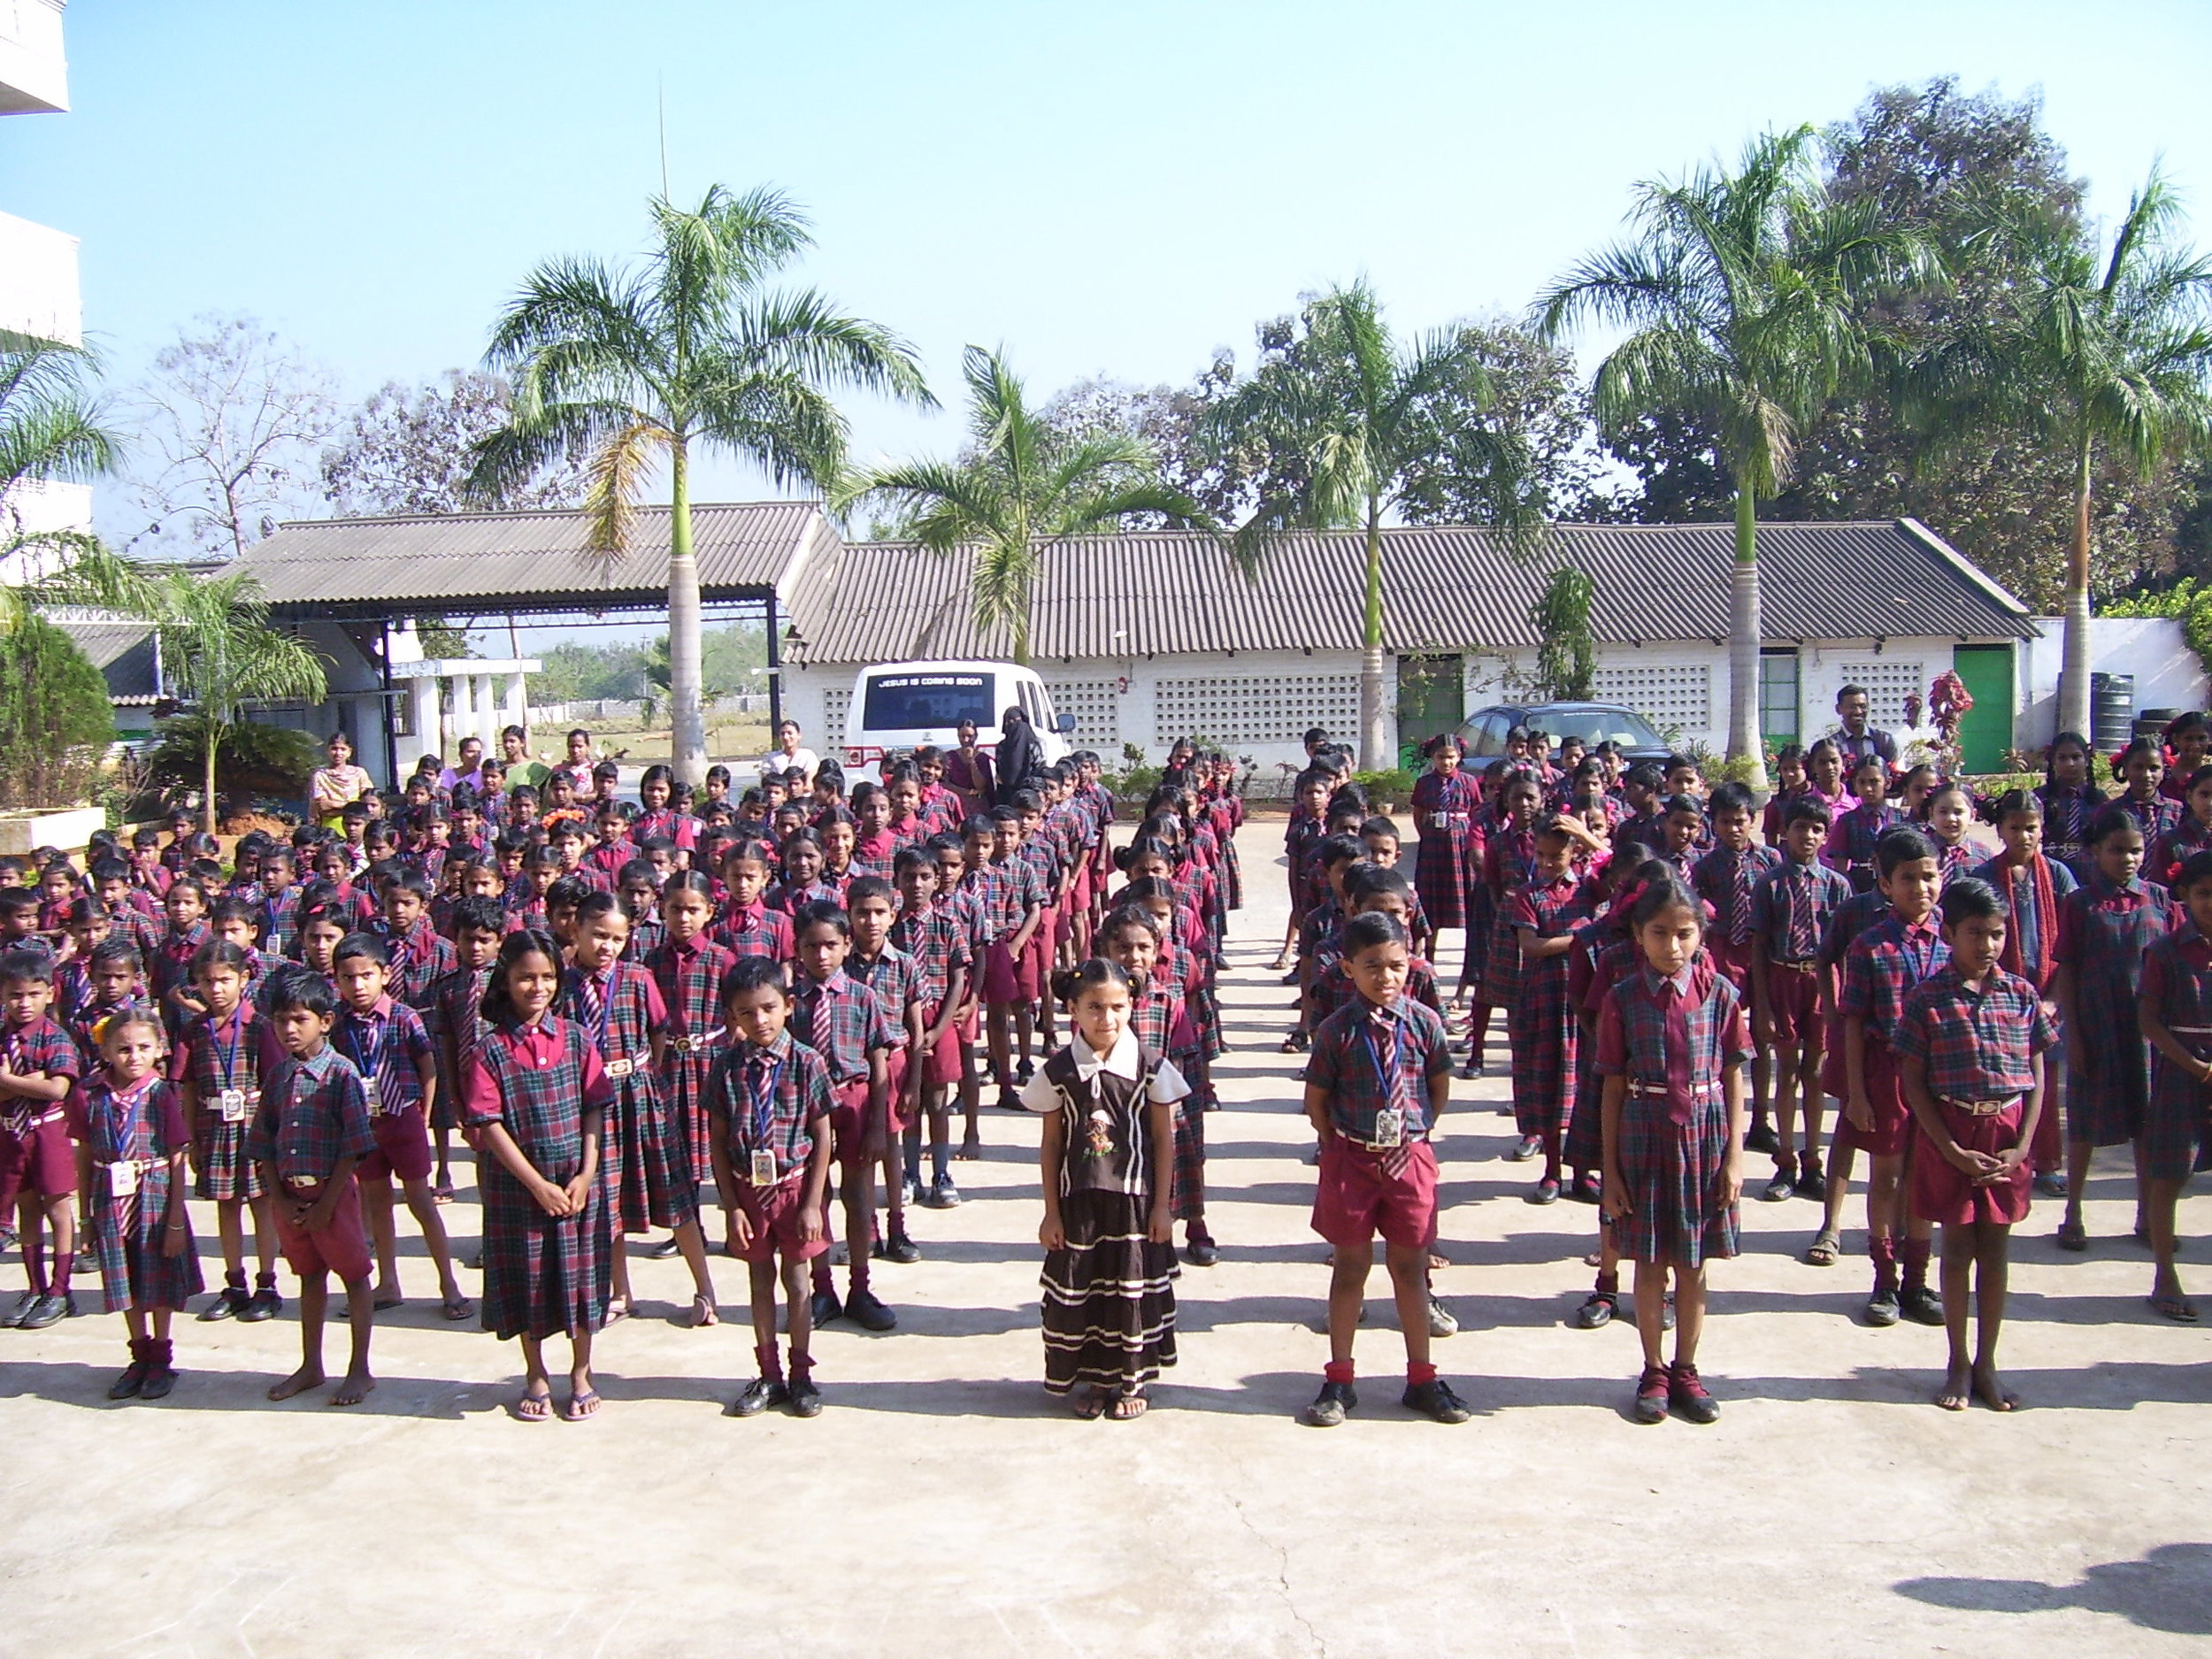 2001  - The first building is completed with space to house 75 children, as well as classroom space for an additional 200 local village children to attend school at the campus.